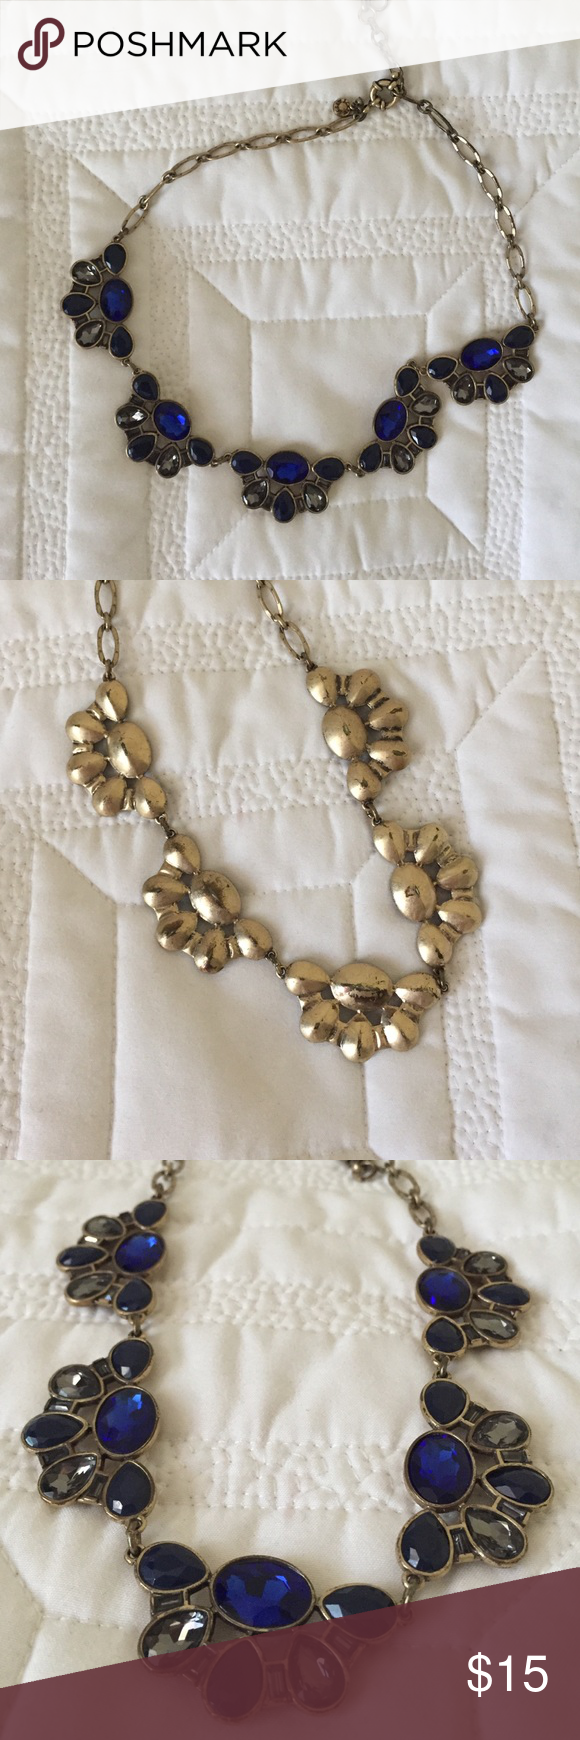 J. Crew necklace jcrew necklace with antique gold hardware and deep blue and grey colored stones. The length is adjustable. Necklace is in used but good condition. J. Crew Jewelry Necklaces